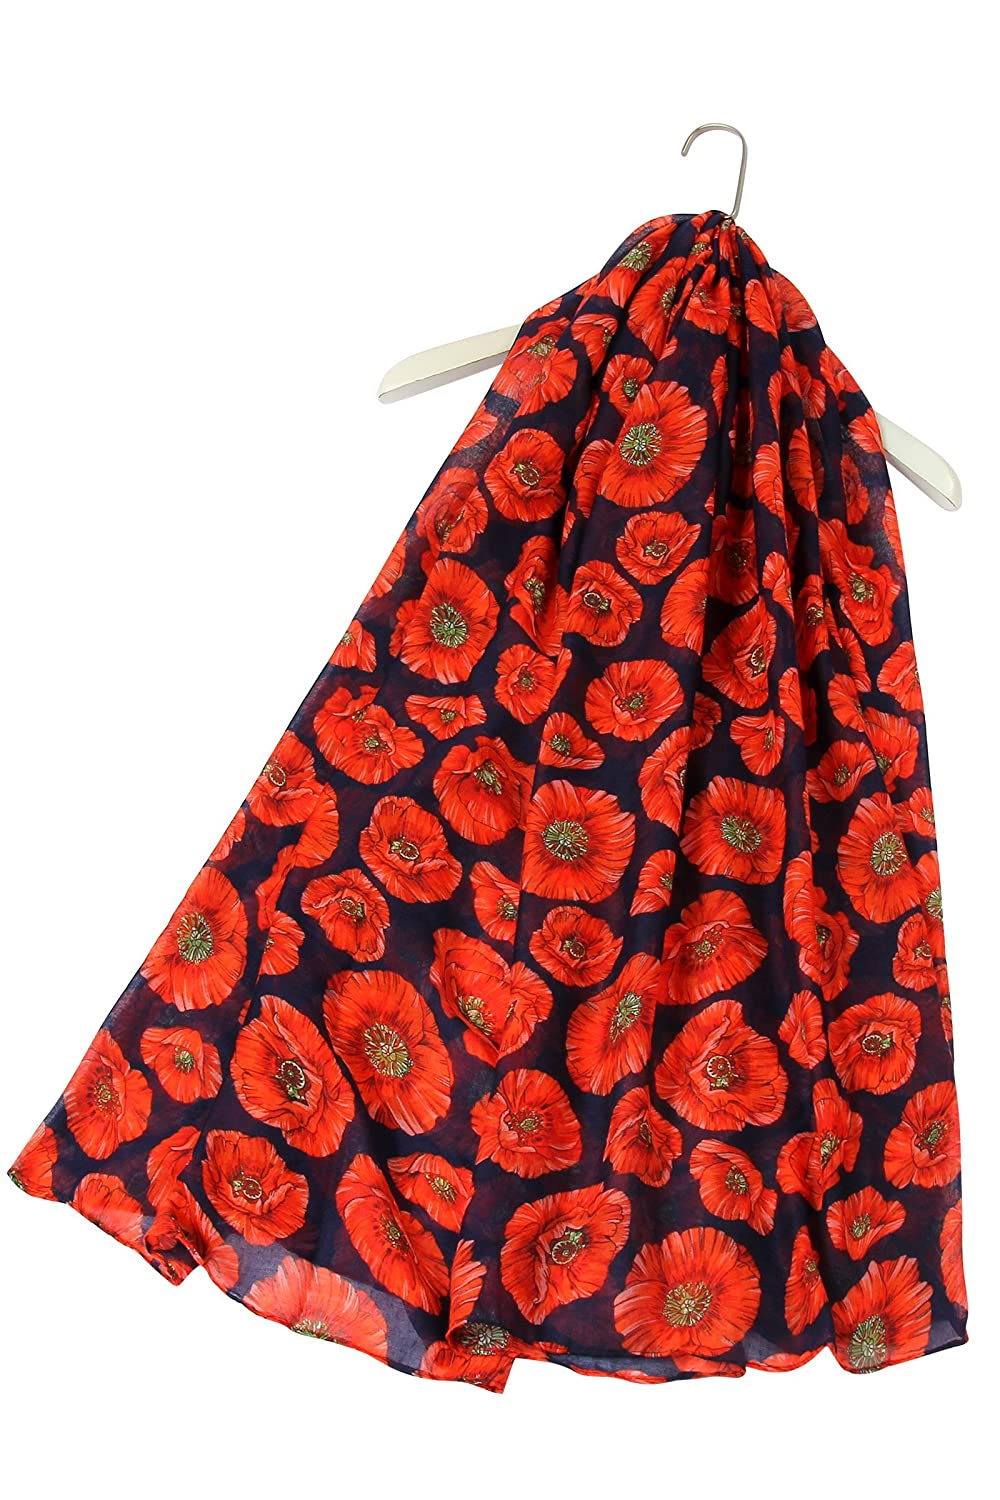 SEW ELEGANT NEW Ladies Women's The Red Poppy Flower Print Scarf Black